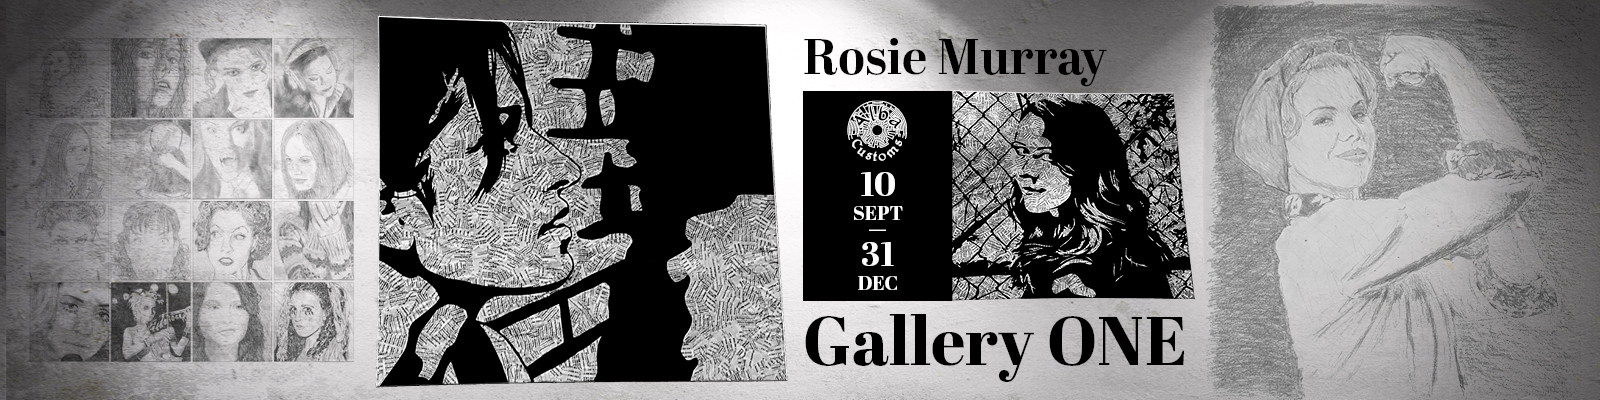 Rosie Murray exhibition slide